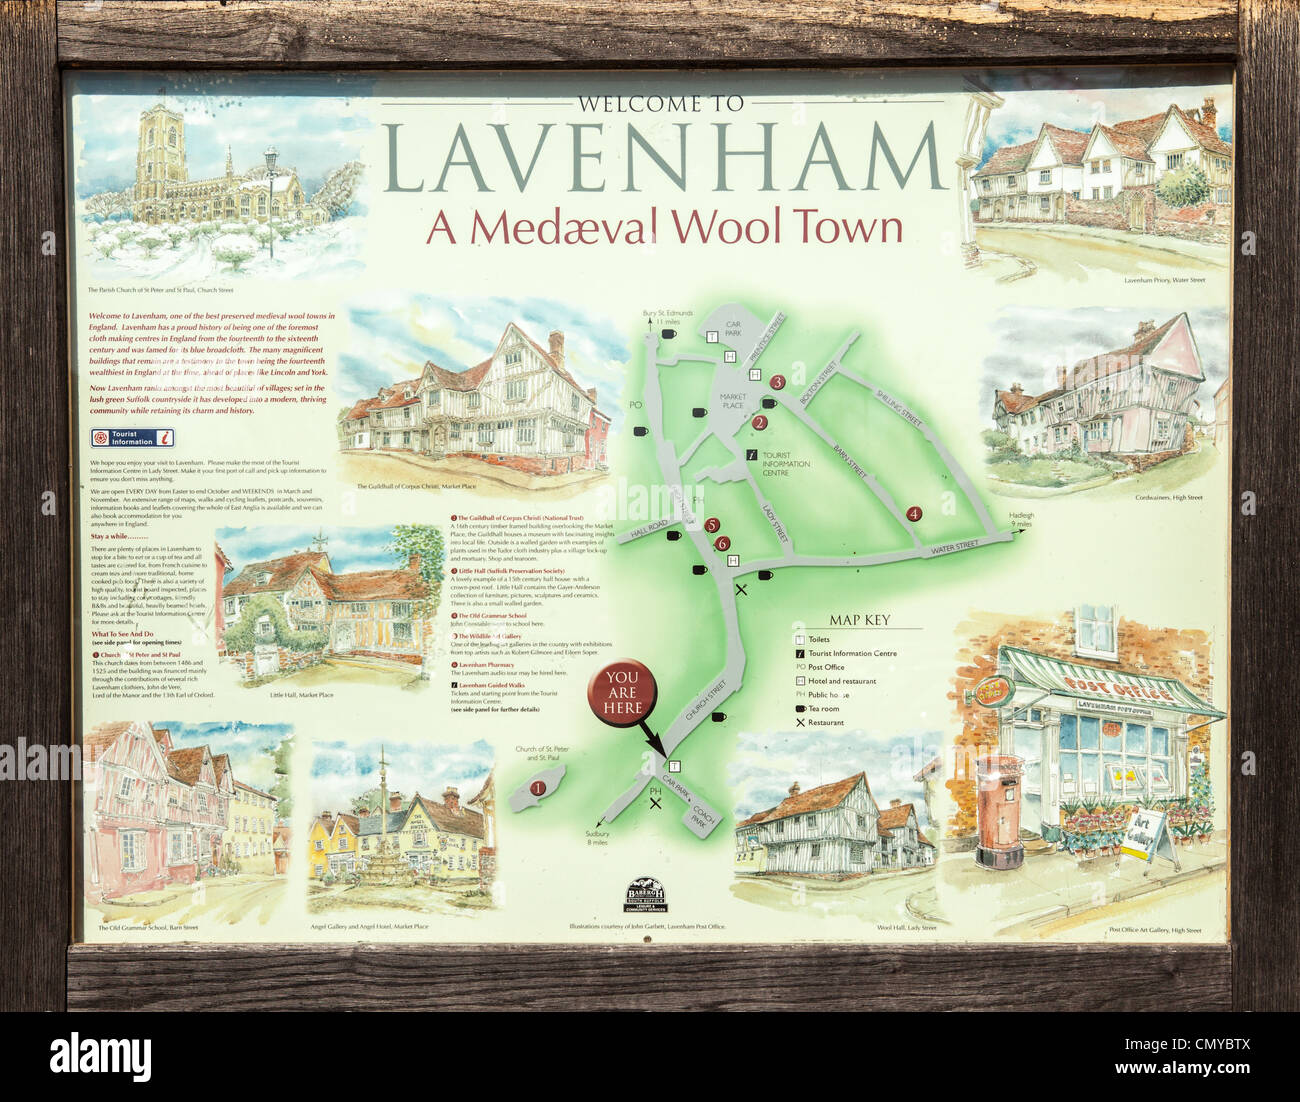 Lavenham tourist information sign and map, Lavenham, Suffolk - Stock Image